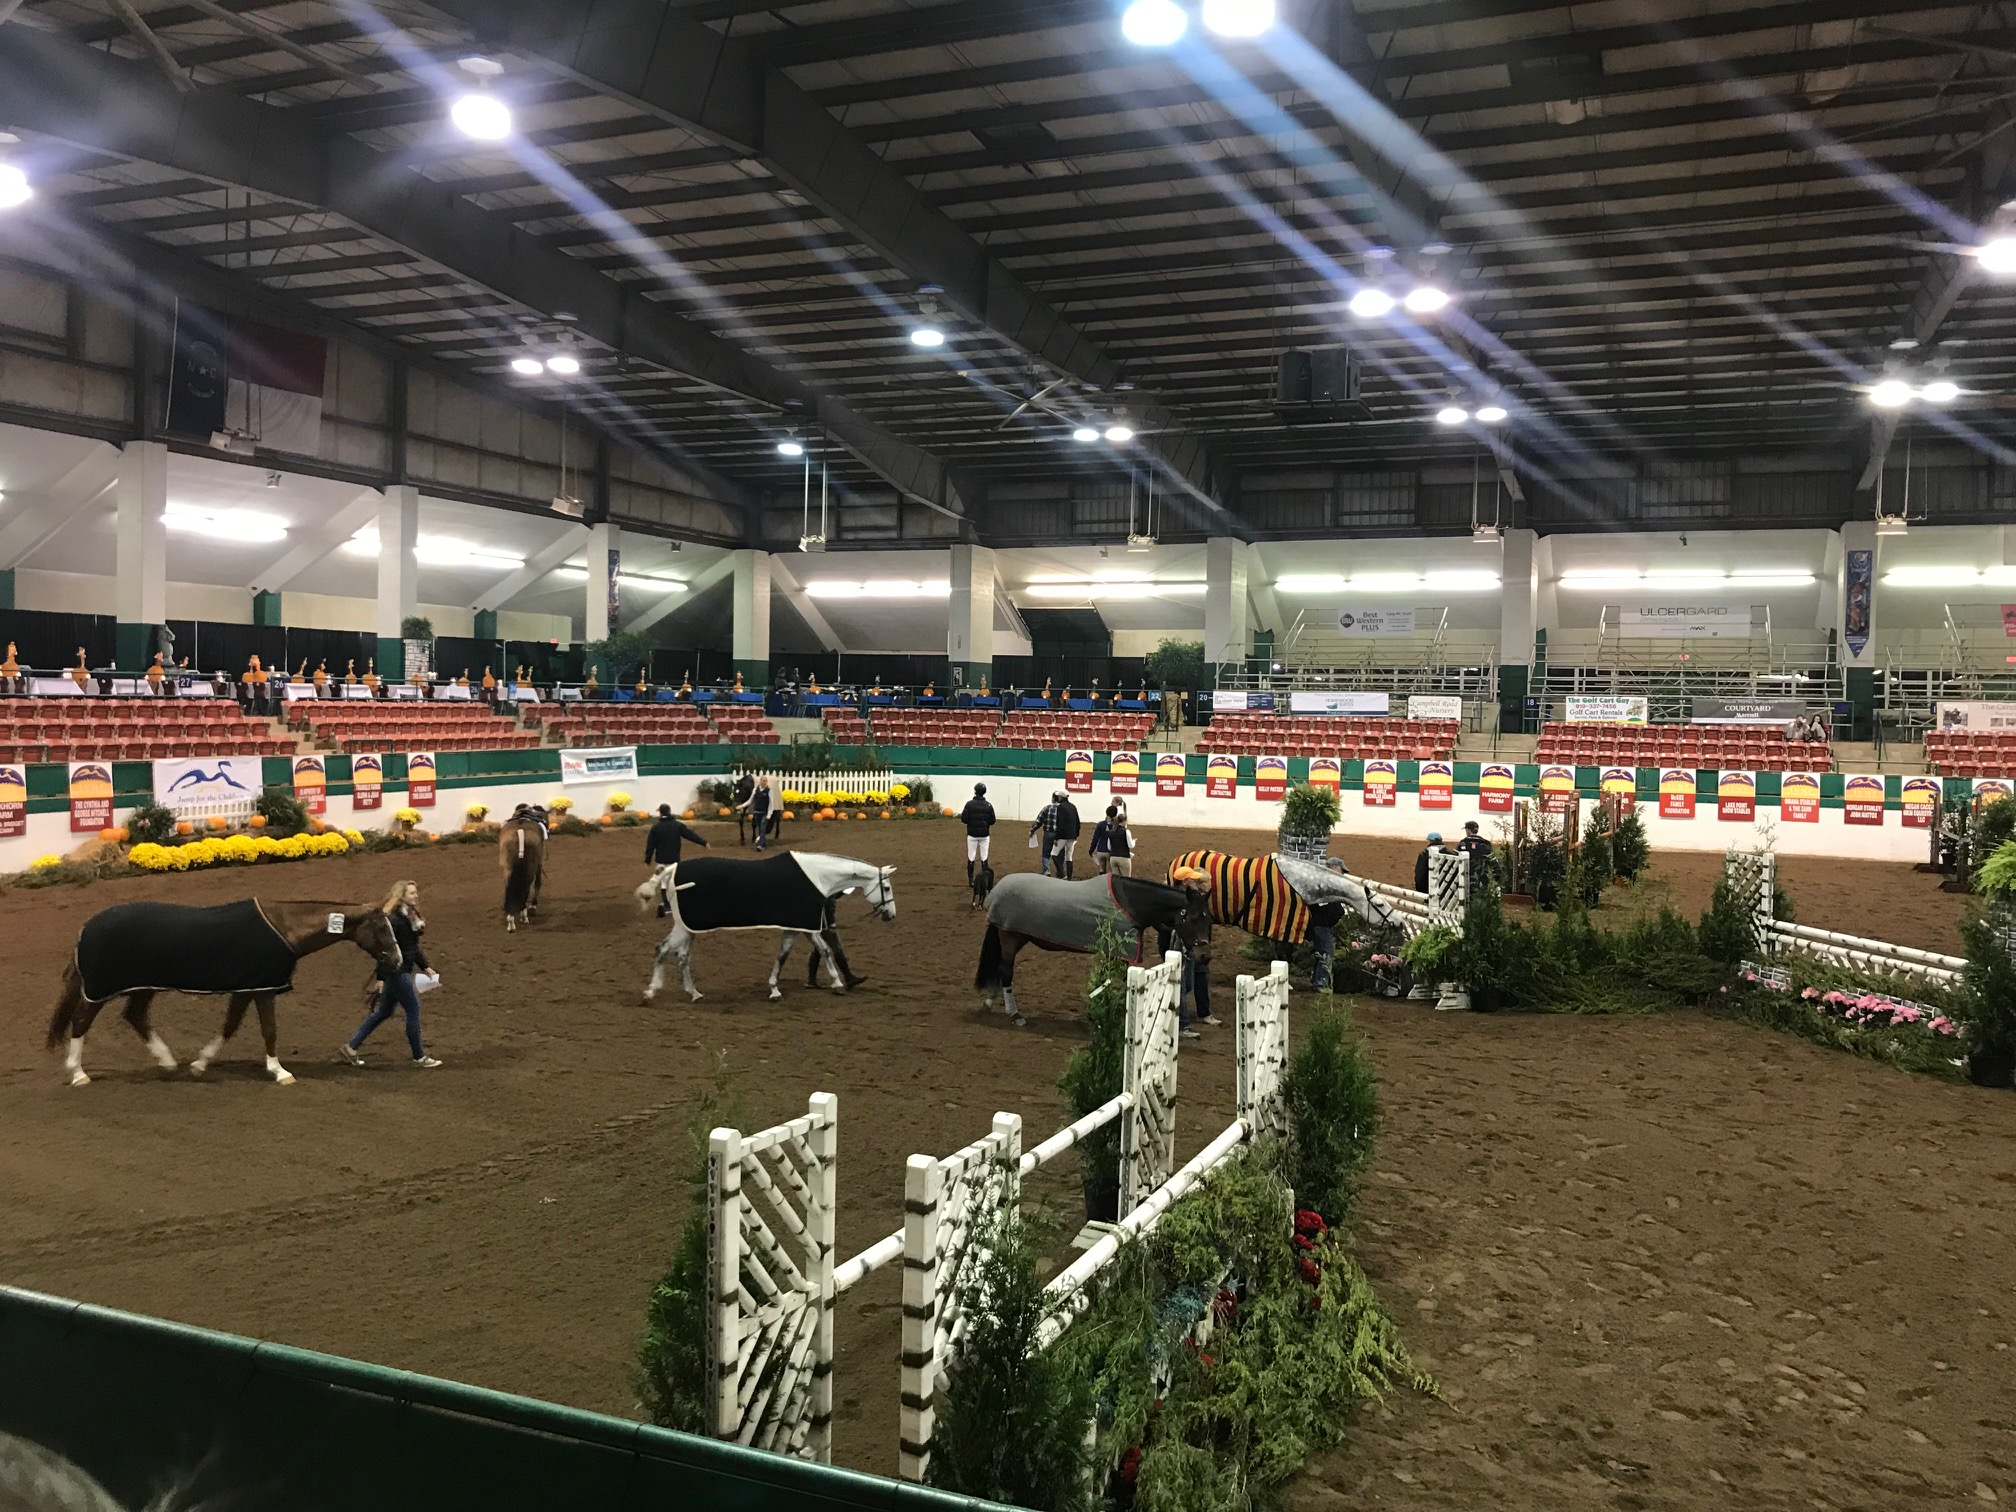 Once the course is set, handlers handwalk horses around the arena.